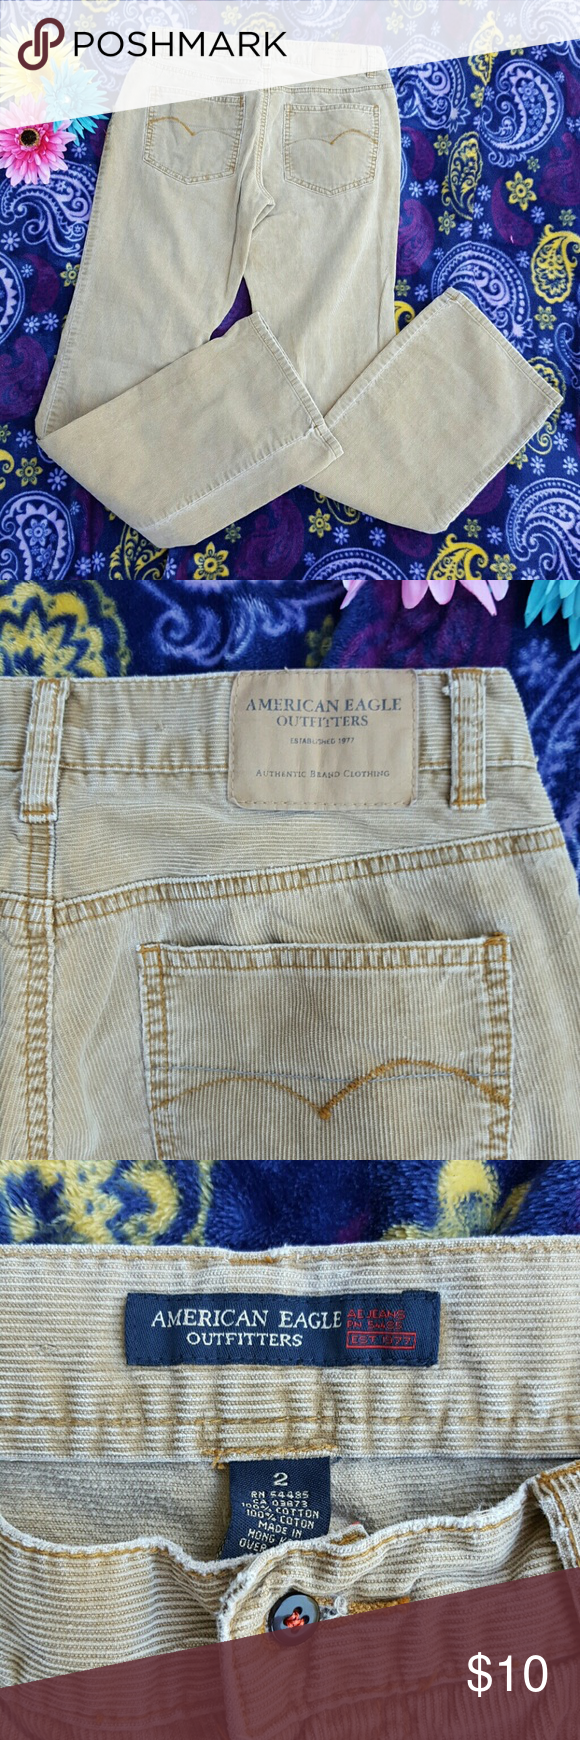 """Cool Cords! - American Eagle Outfitters These are cool beige cords by AEO, sort of vintage lol early 2000's. Really good condition, considering. They've been stored well in a storage bin along with some other great finds, such fun! Size 2, but these run on the bigger side. Have fun in these """"70's feel"""" pants. Wish they fit me! American Eagle Outfitters Pants Boot Cut & Flare"""